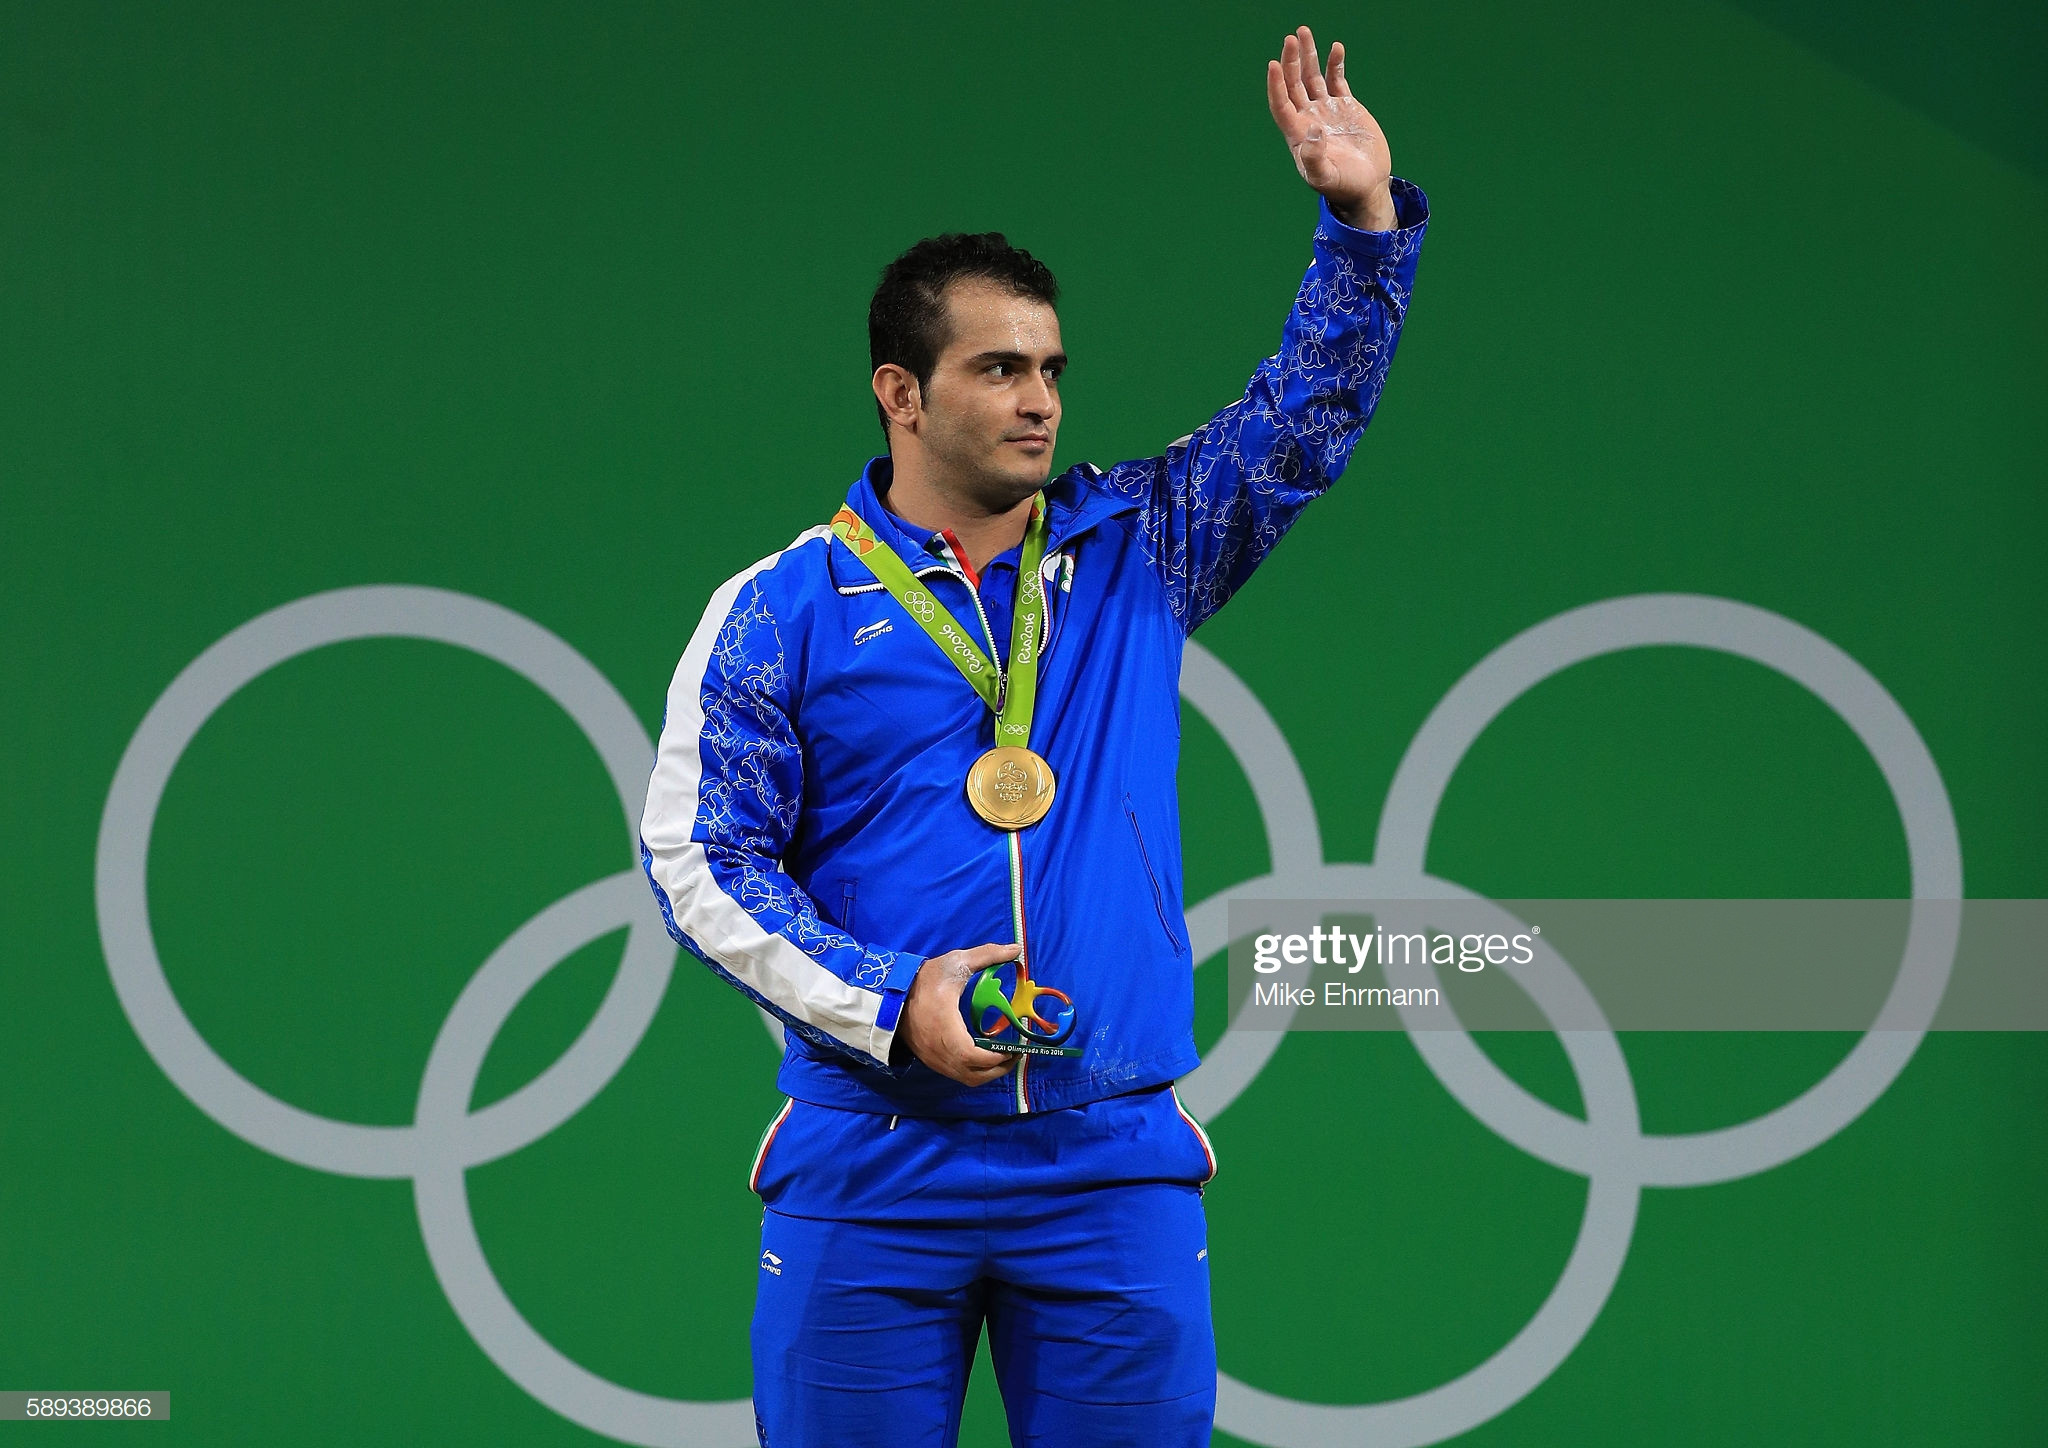 Sohrab Moradi could yet make the Tokyo 2020 Olympic Games as one of Iran's weightlifters © Getty Images